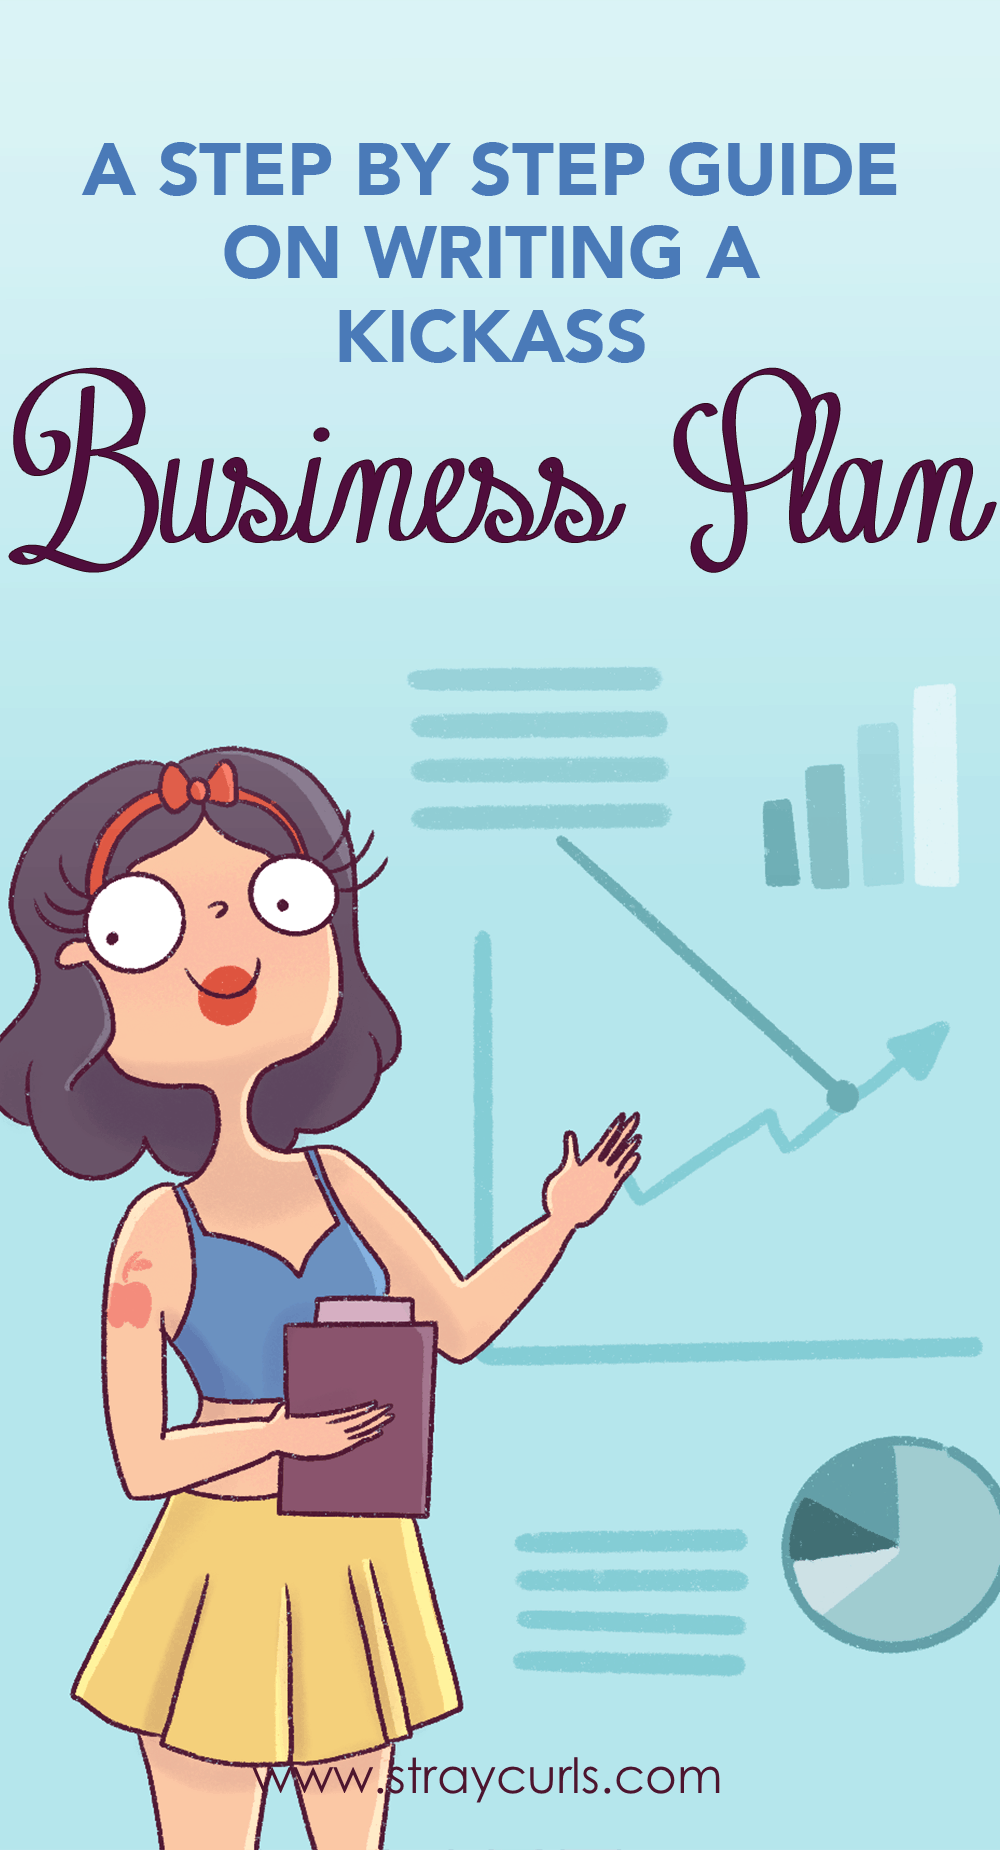 Learn how to draft a kickass business plan for your Blog. This post will teach you how to define your brand, find your niche, learn who your target audience is and so much more. #blog #bloggingtips #businessplan #business #blog